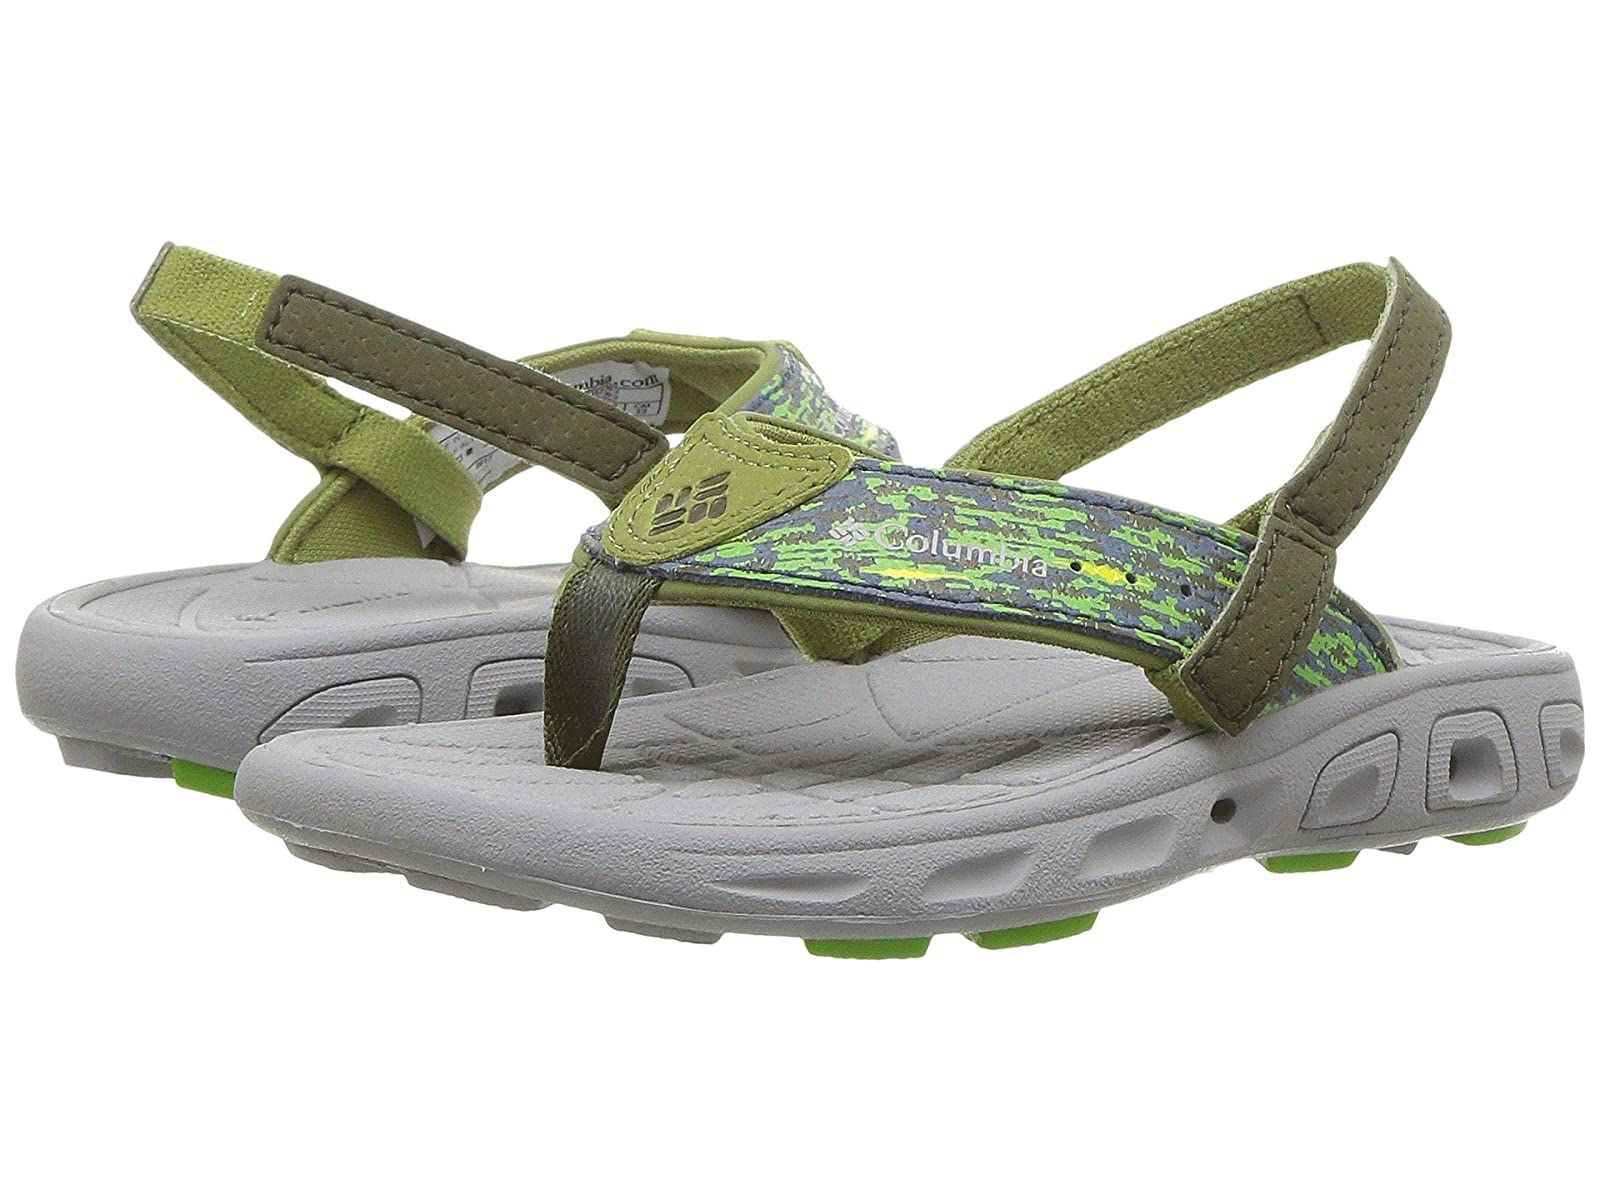 Columbia Kids Techsun Flip (Toddler/Little Kid)Comfortable and distinctive shoes